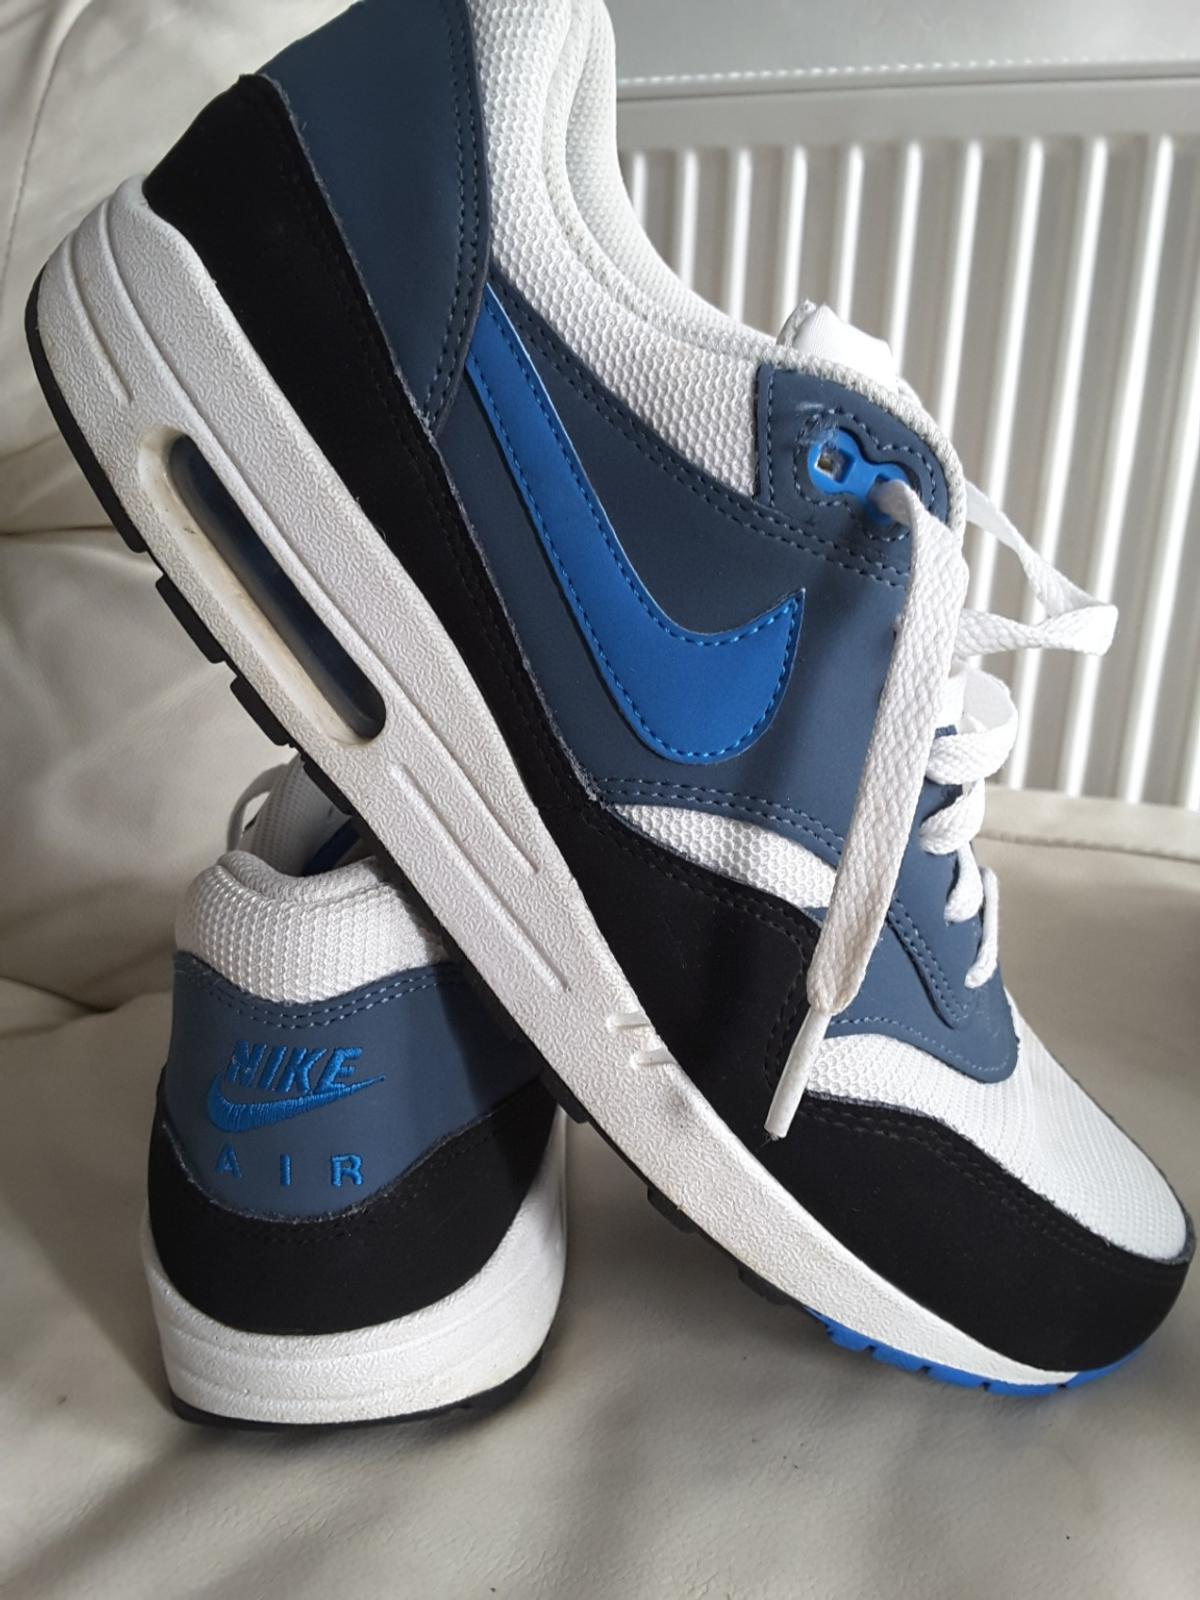 MENS NIKE AIR MAX 1 TRAINERS UK 9 EUR 44 in SW9 London für 32,00 ...